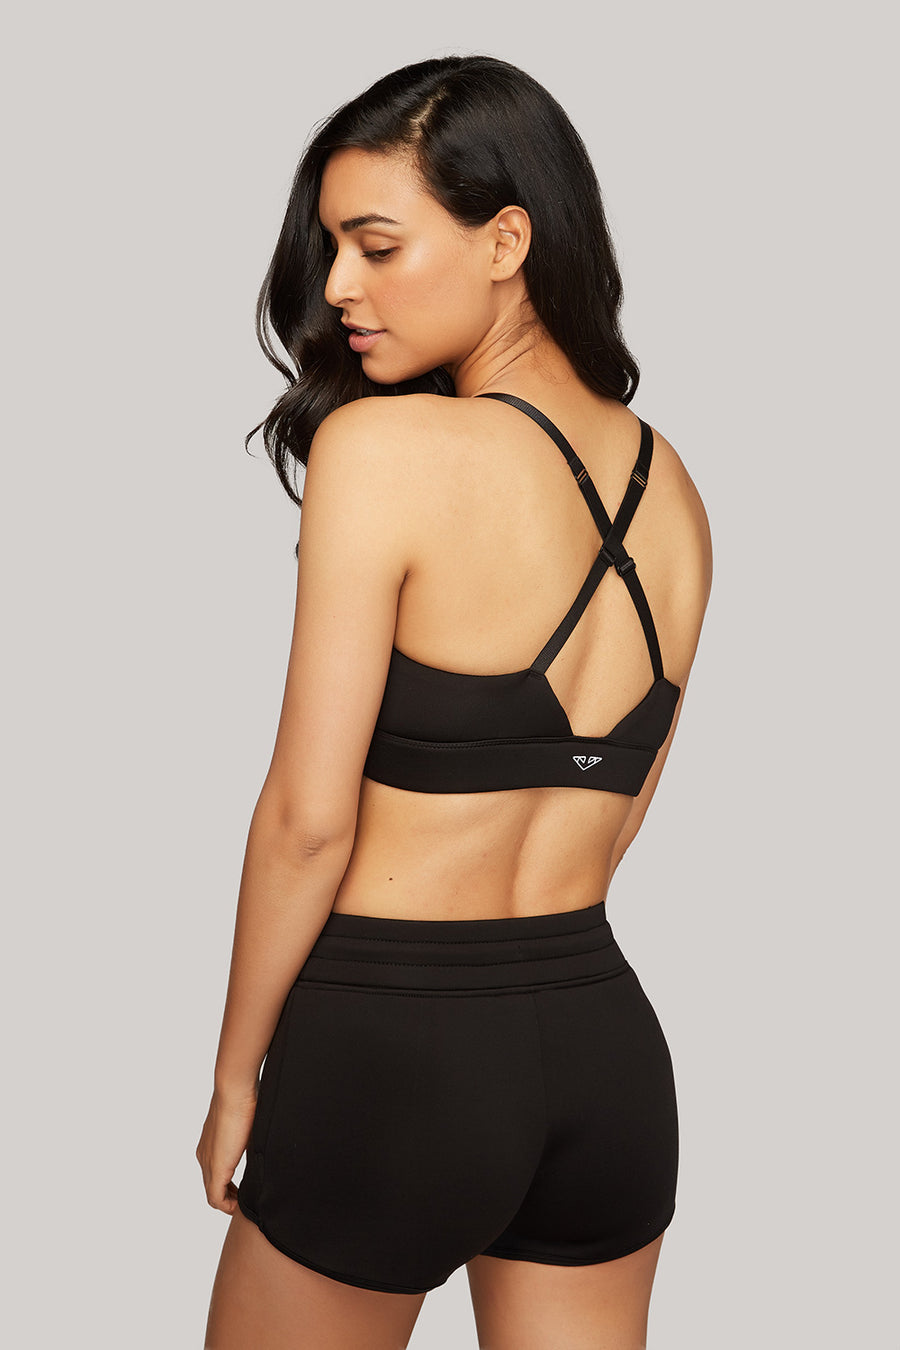 Form Bra Top